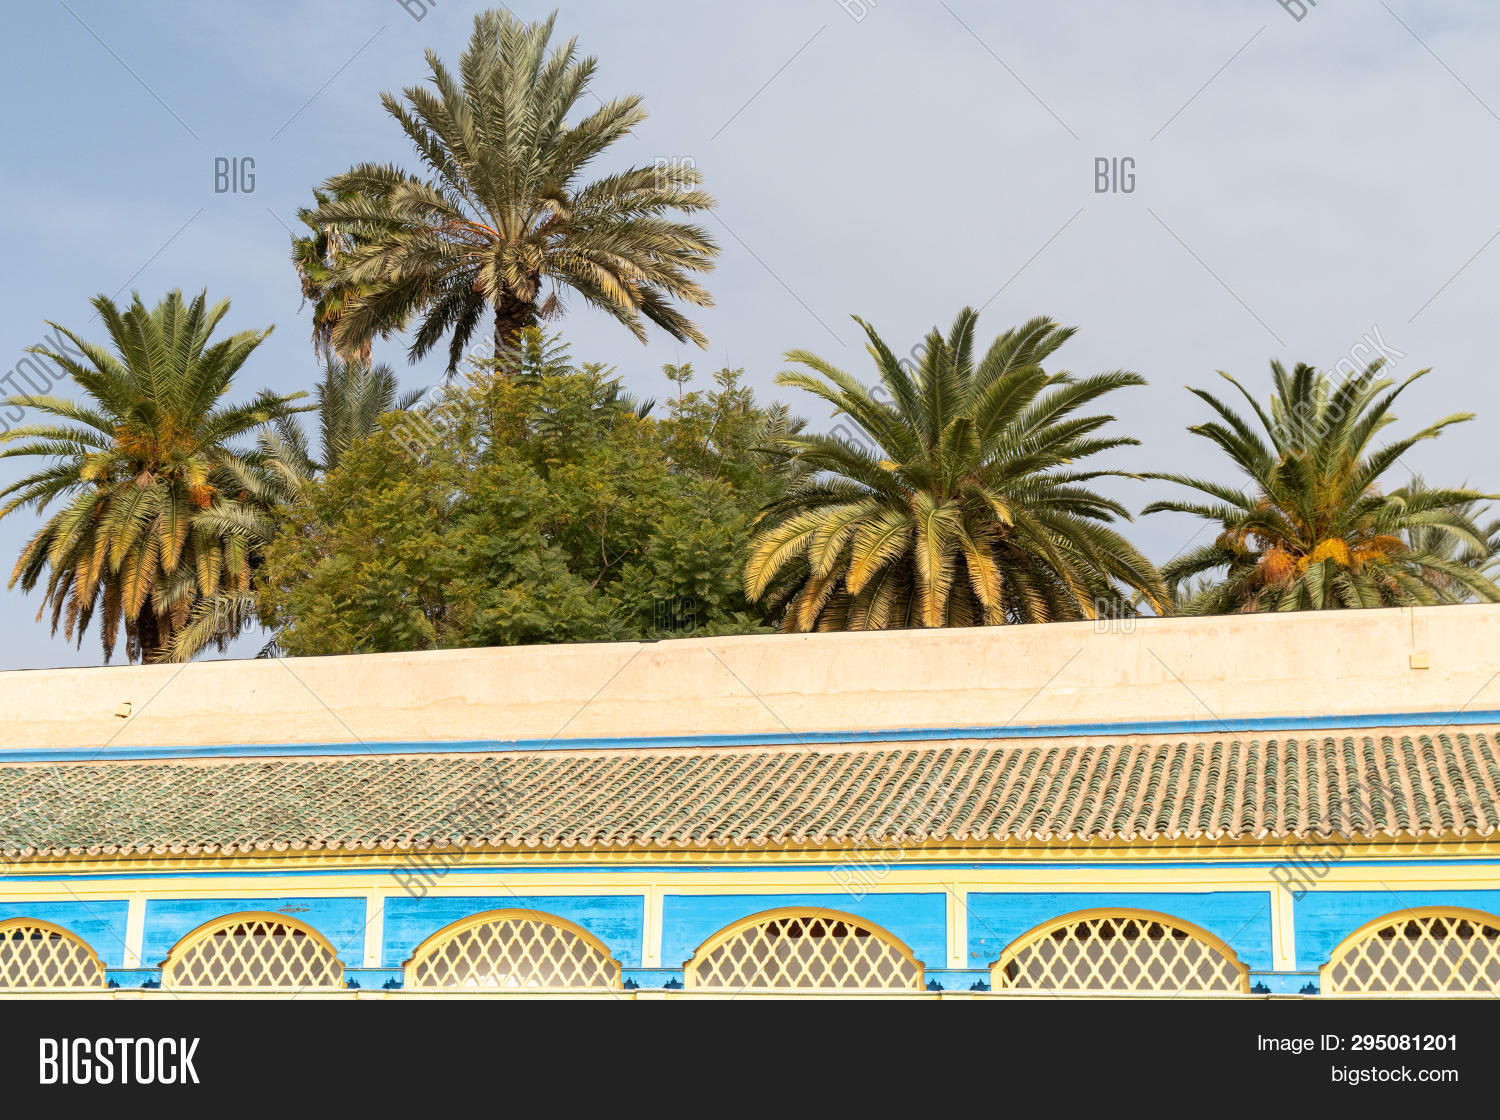 African Oasis Palm Image Photo Free Trial Bigstock